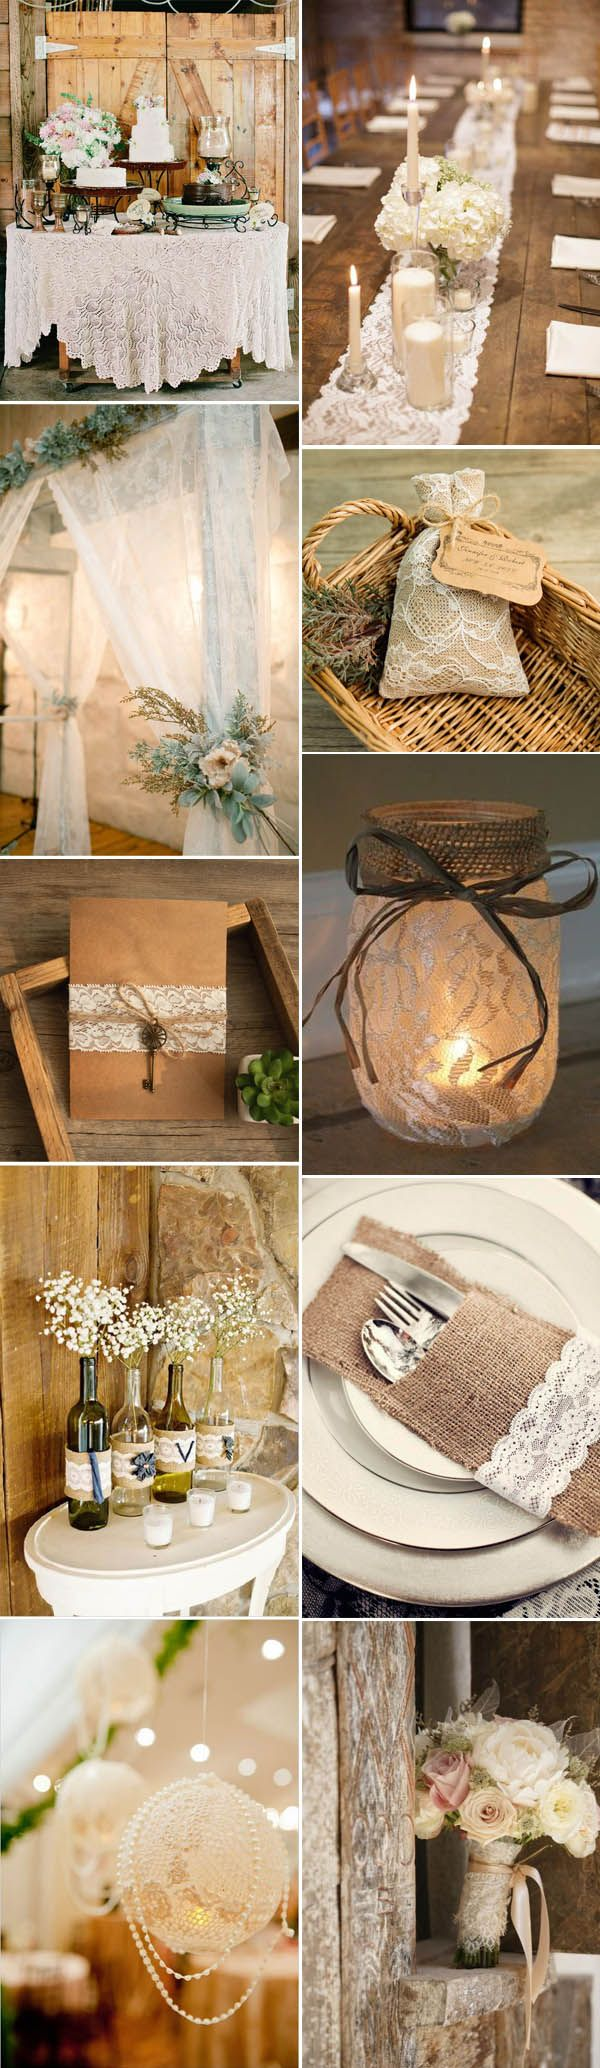 50+ Great Ideas to Incoporate Lace Into Your Vintage Weddings